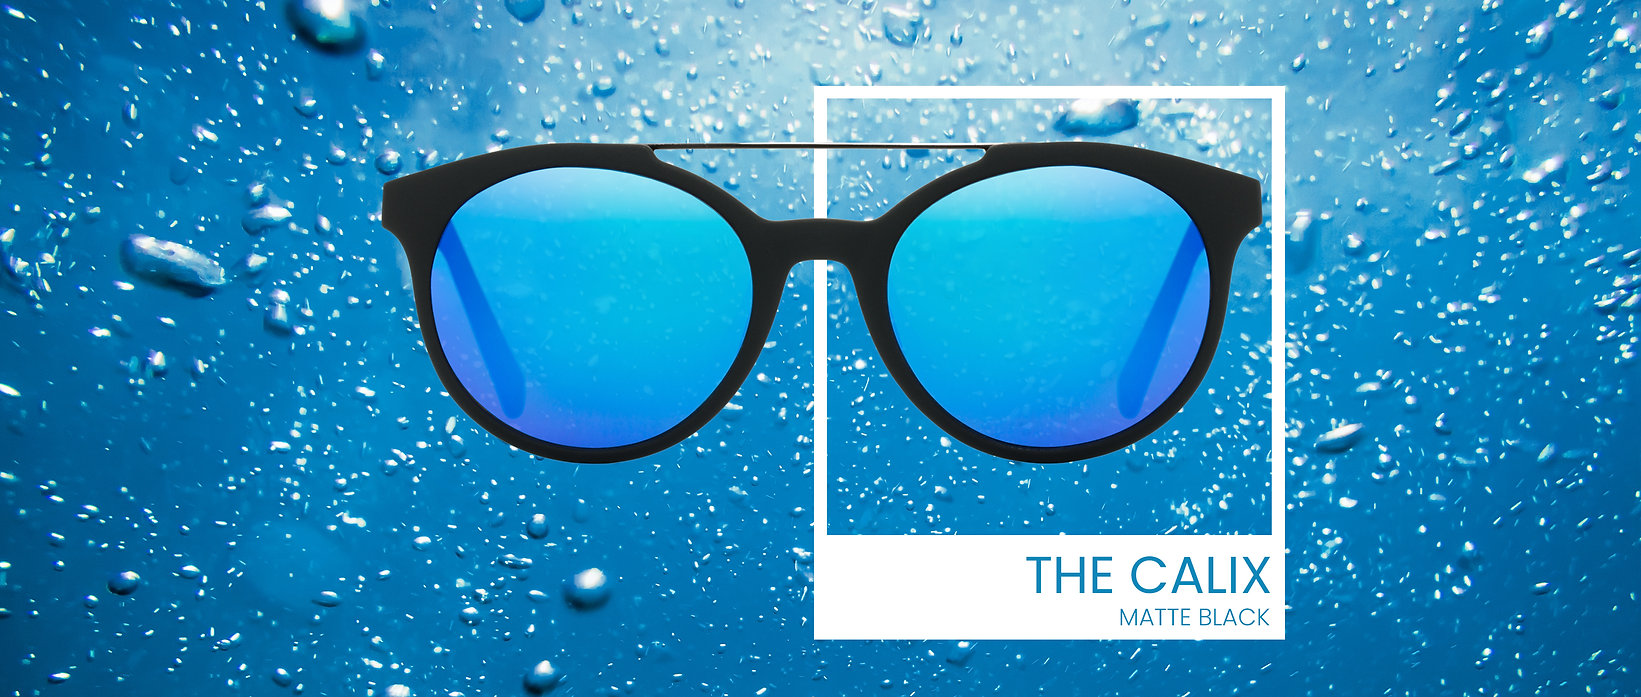 us-eyewear-product-banner_calix01.jpg